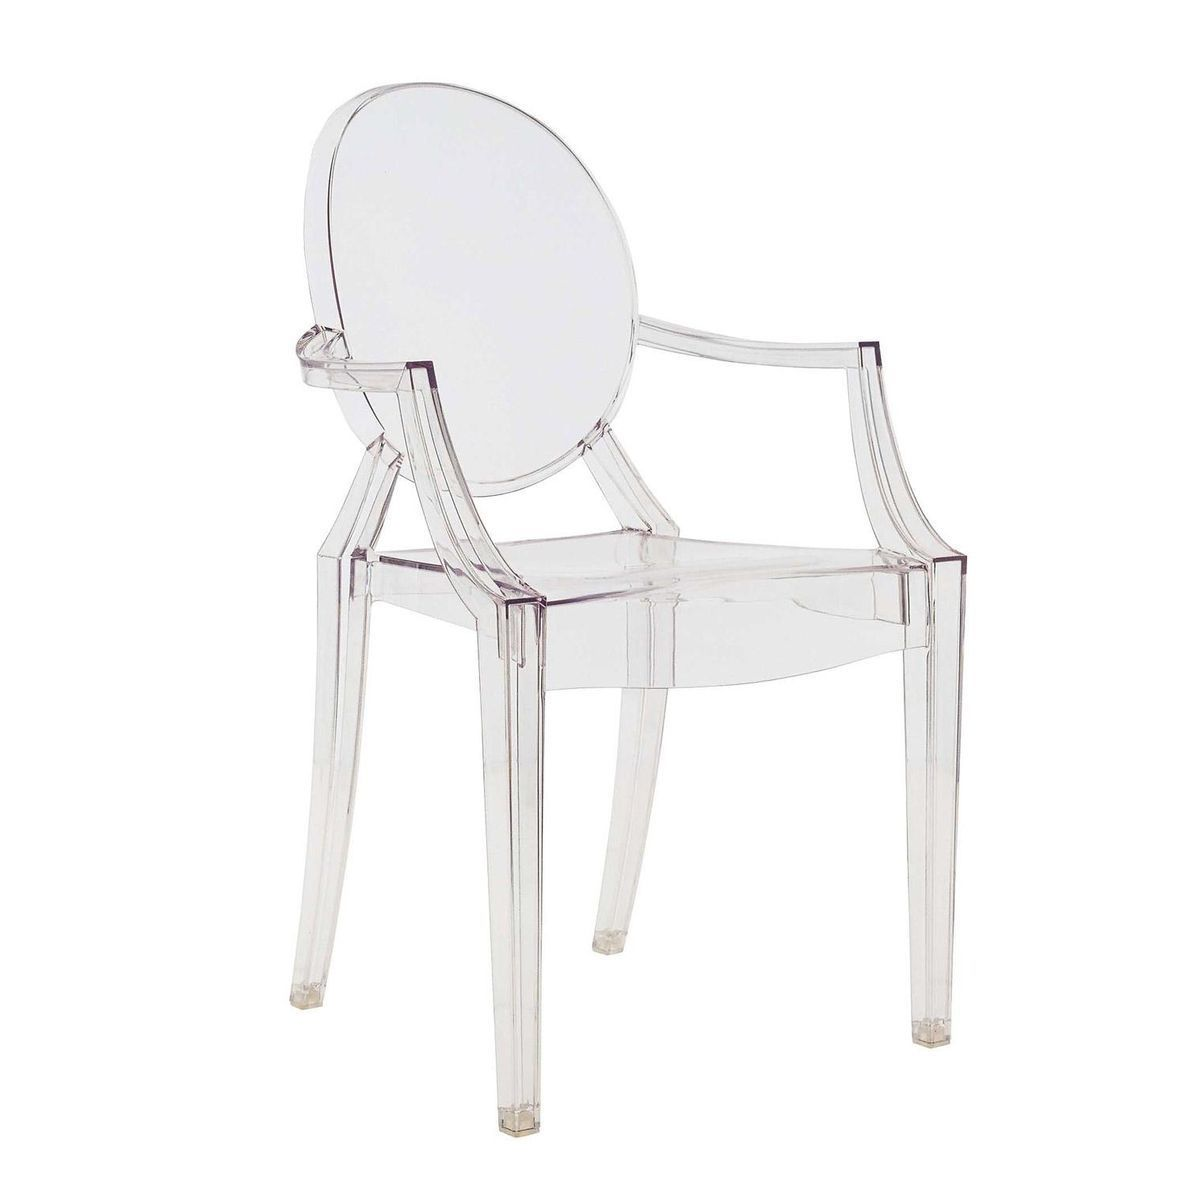 louis ghost armchair  kartell  armchairs  seating furniture  - kartell  louis ghost armlehnstuhl  glasklartransparent